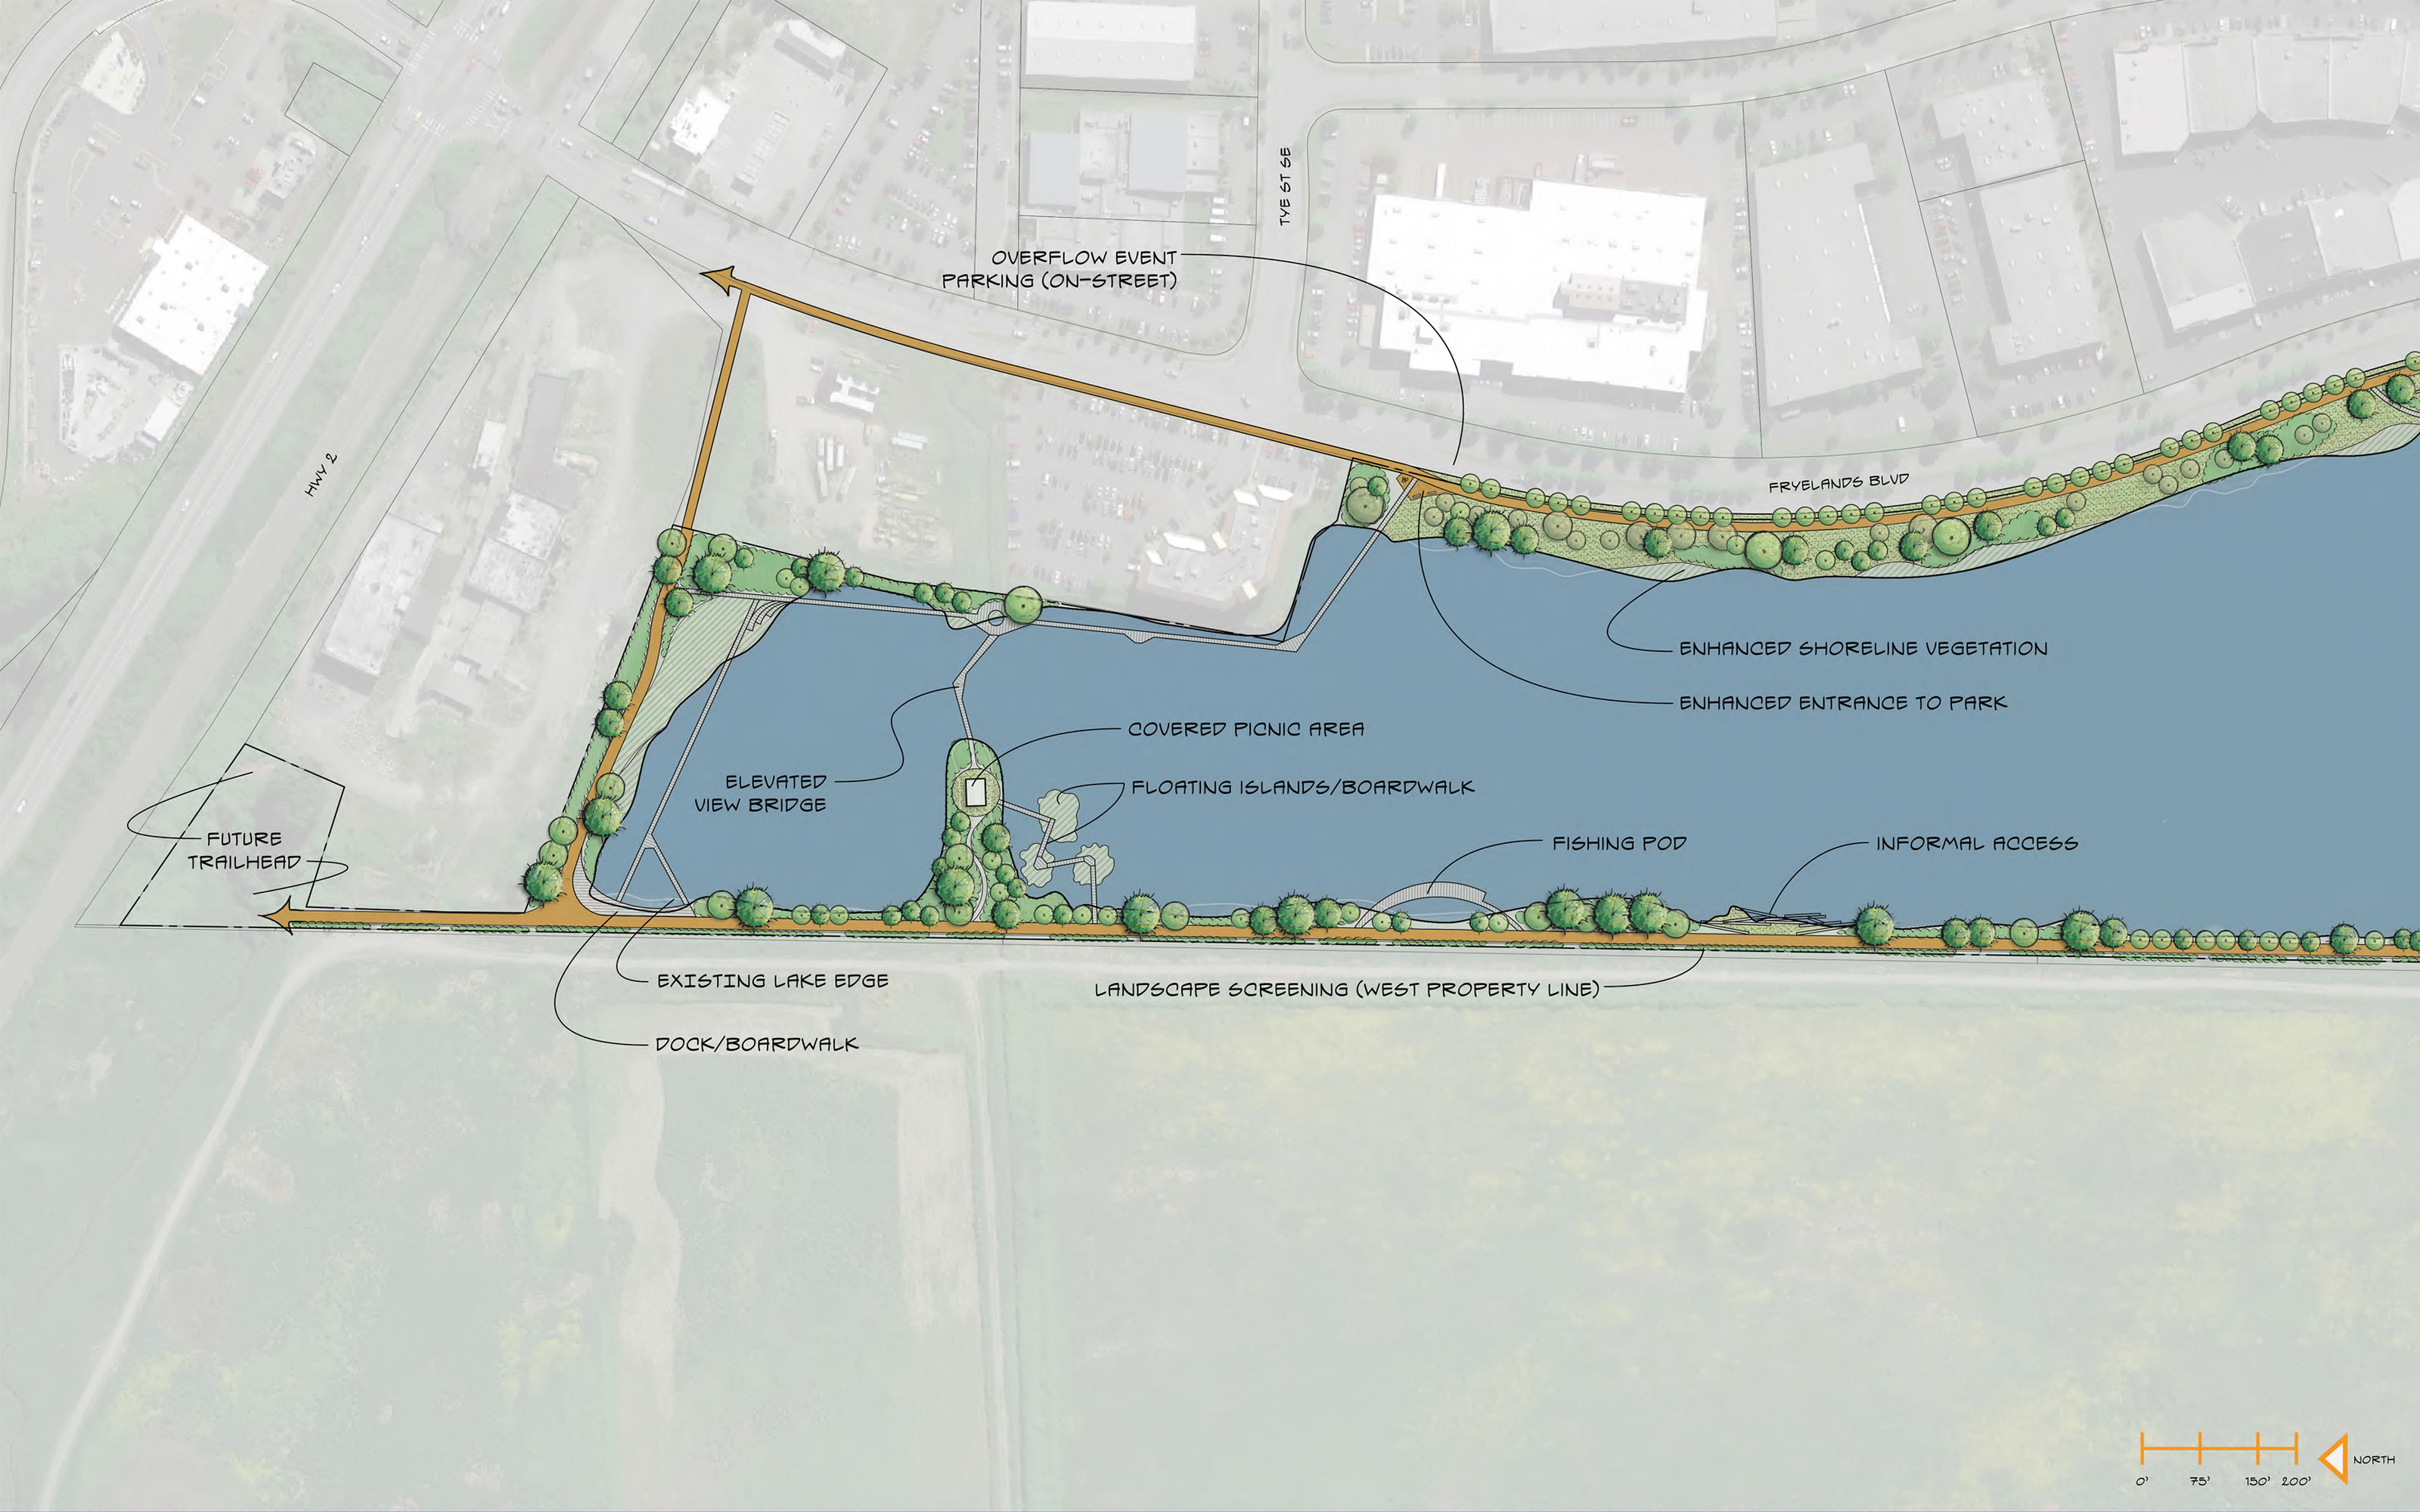 "Now, let's move to the (north) <strong>lakeshore</strong> portions of Lake Tye. Here's where Lake Tye's quieter side happens, with features allowing folks to run and bike, enjoy a quiet stroll or shoreline angling. This concept completes the trail circuit along the lake, introduces a ""view bridge"" near the northern shore, adds places to fish, enhances the water's edge with trees and other plants, and provides occasional boardwalks to enrich the waterside experience. <a href=""https://drive.google.com/file/d/0BxrVDQaWMHGdZGJhUGNGWmFmM3c/view?usp=sharing"" rel=""nofollow"" target=""_blank"">Click here </a>to see an enlarged view in a new window. <br><br>"